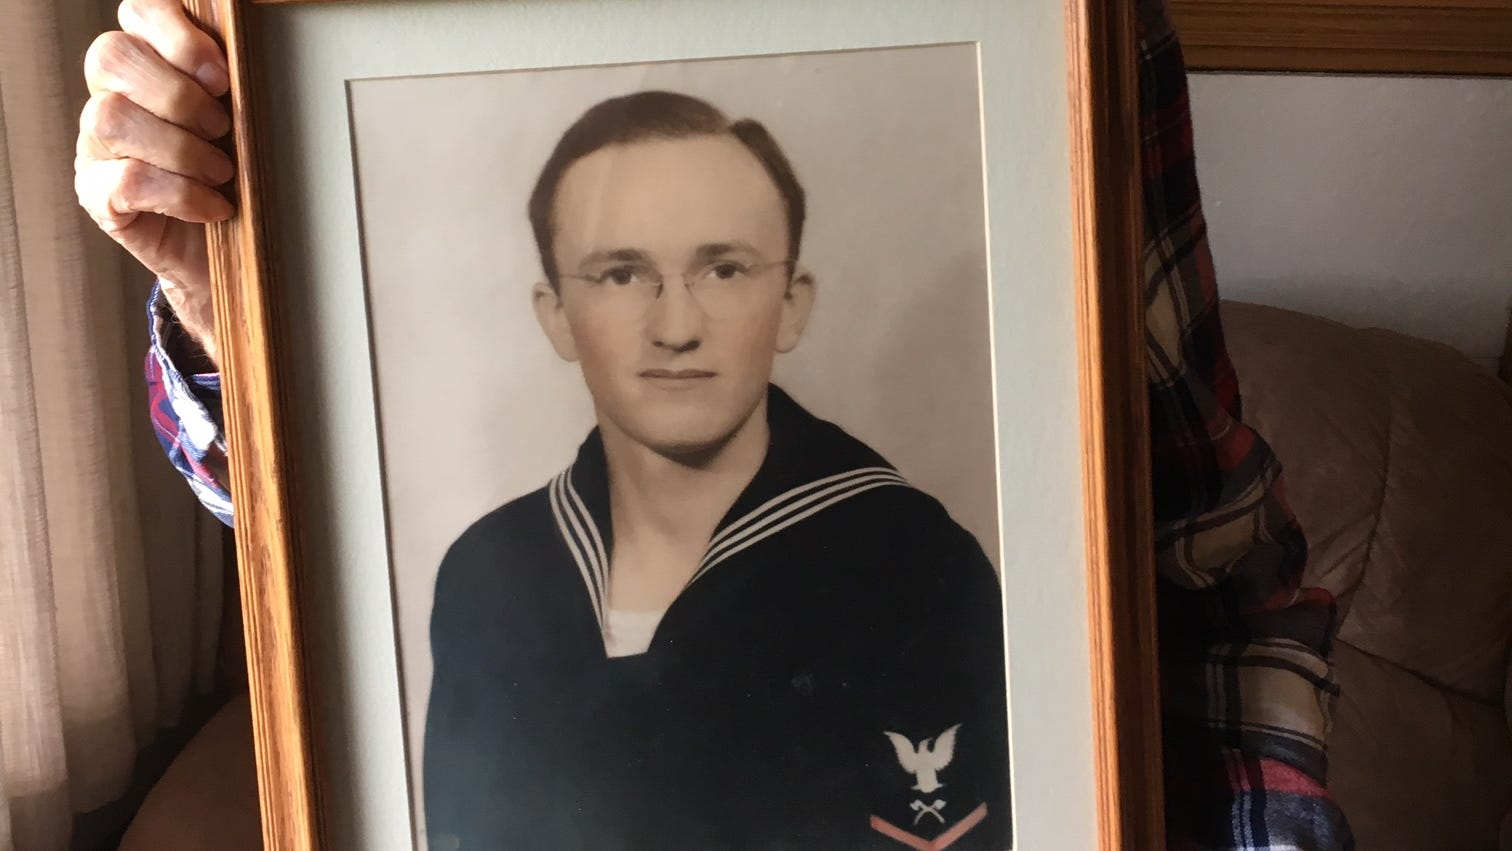 Iowa sailor, lost at Pearl Harbor, is returning home, where his brother will bury him